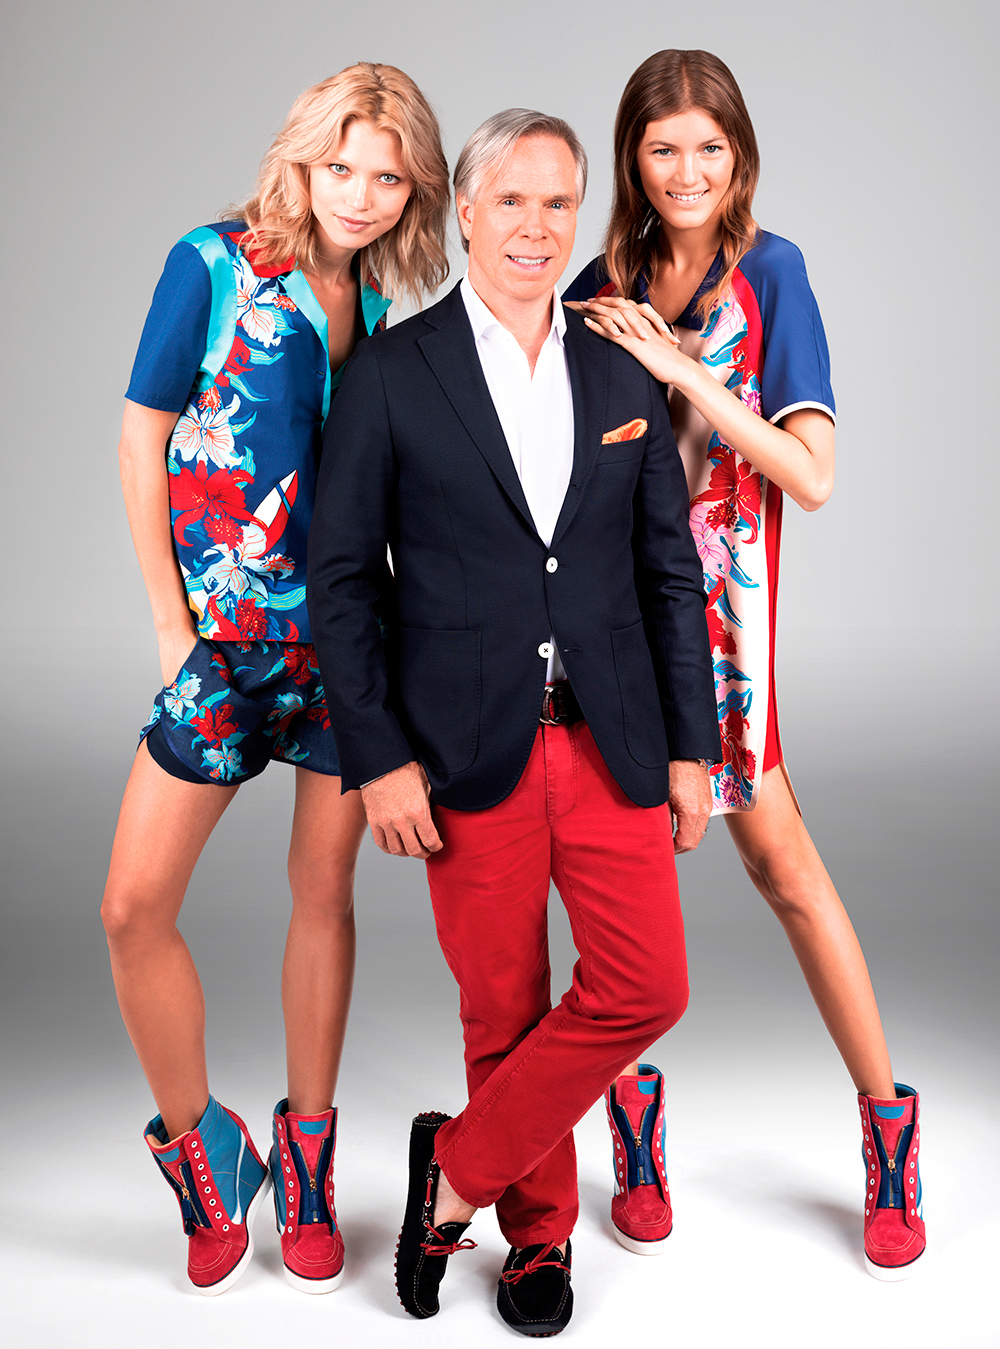 Designer, Tommy Hilfiger and his models